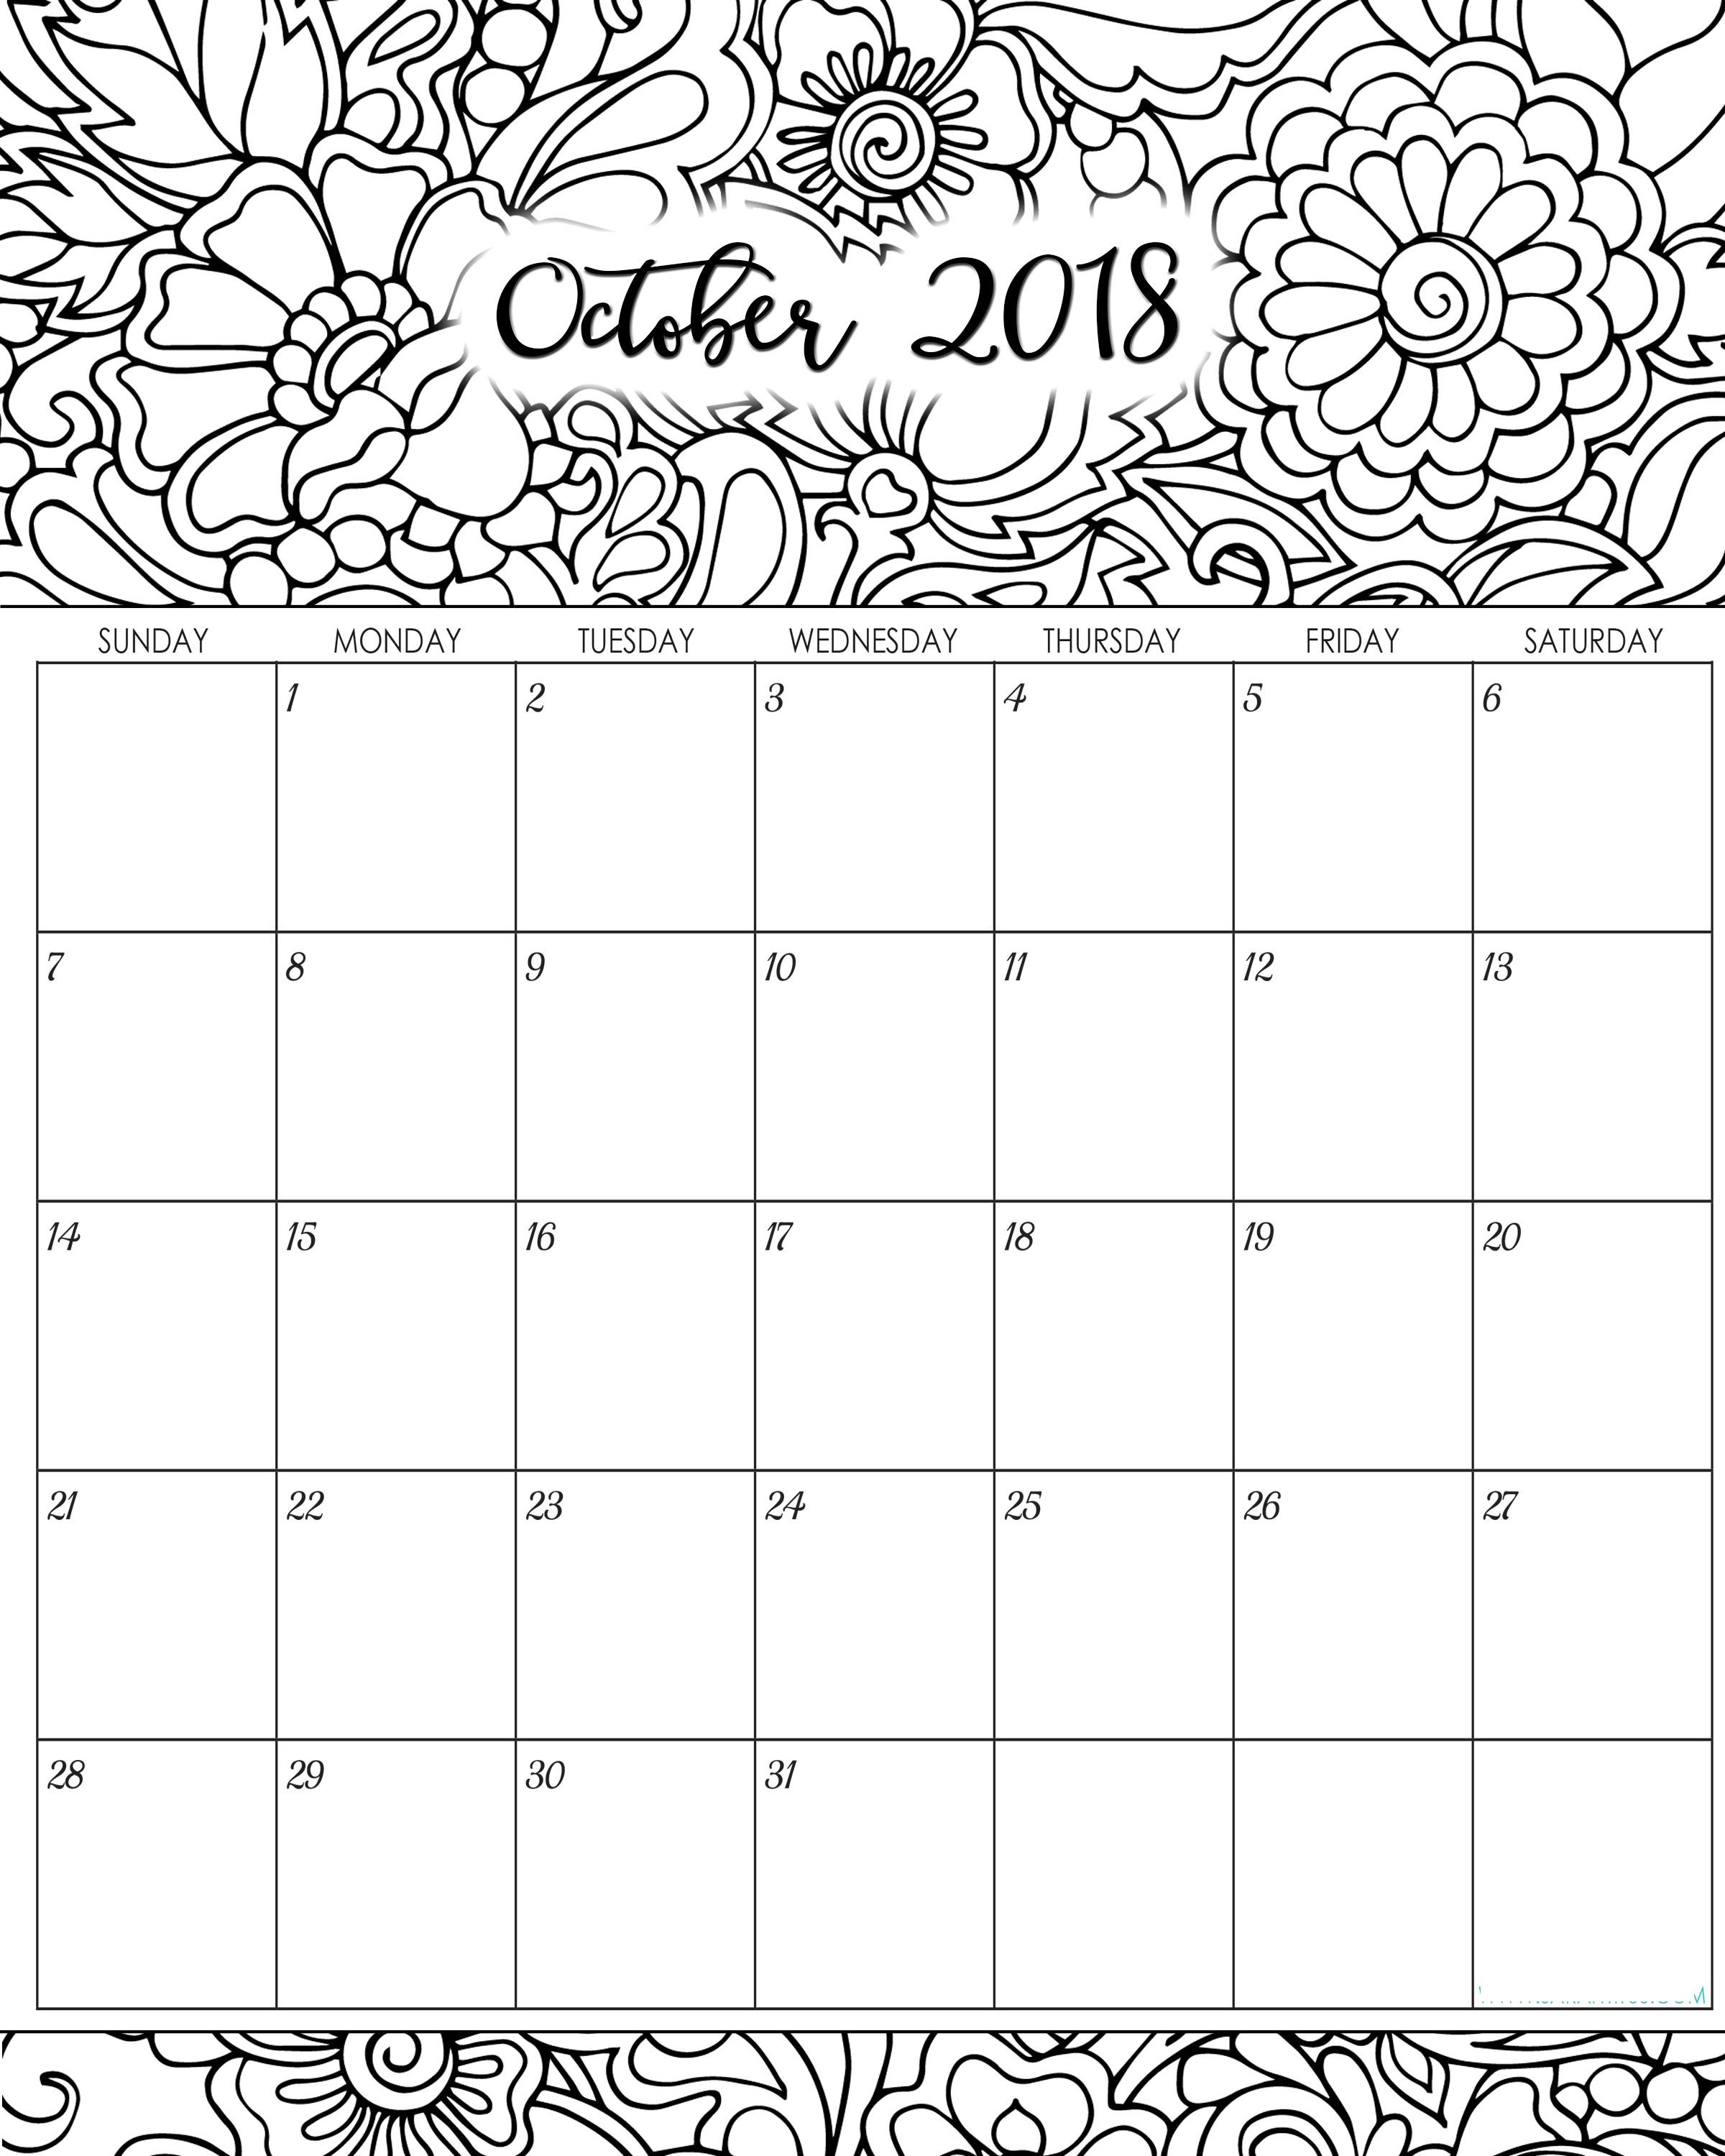 October 2018 Calendar Printable Coloring Page